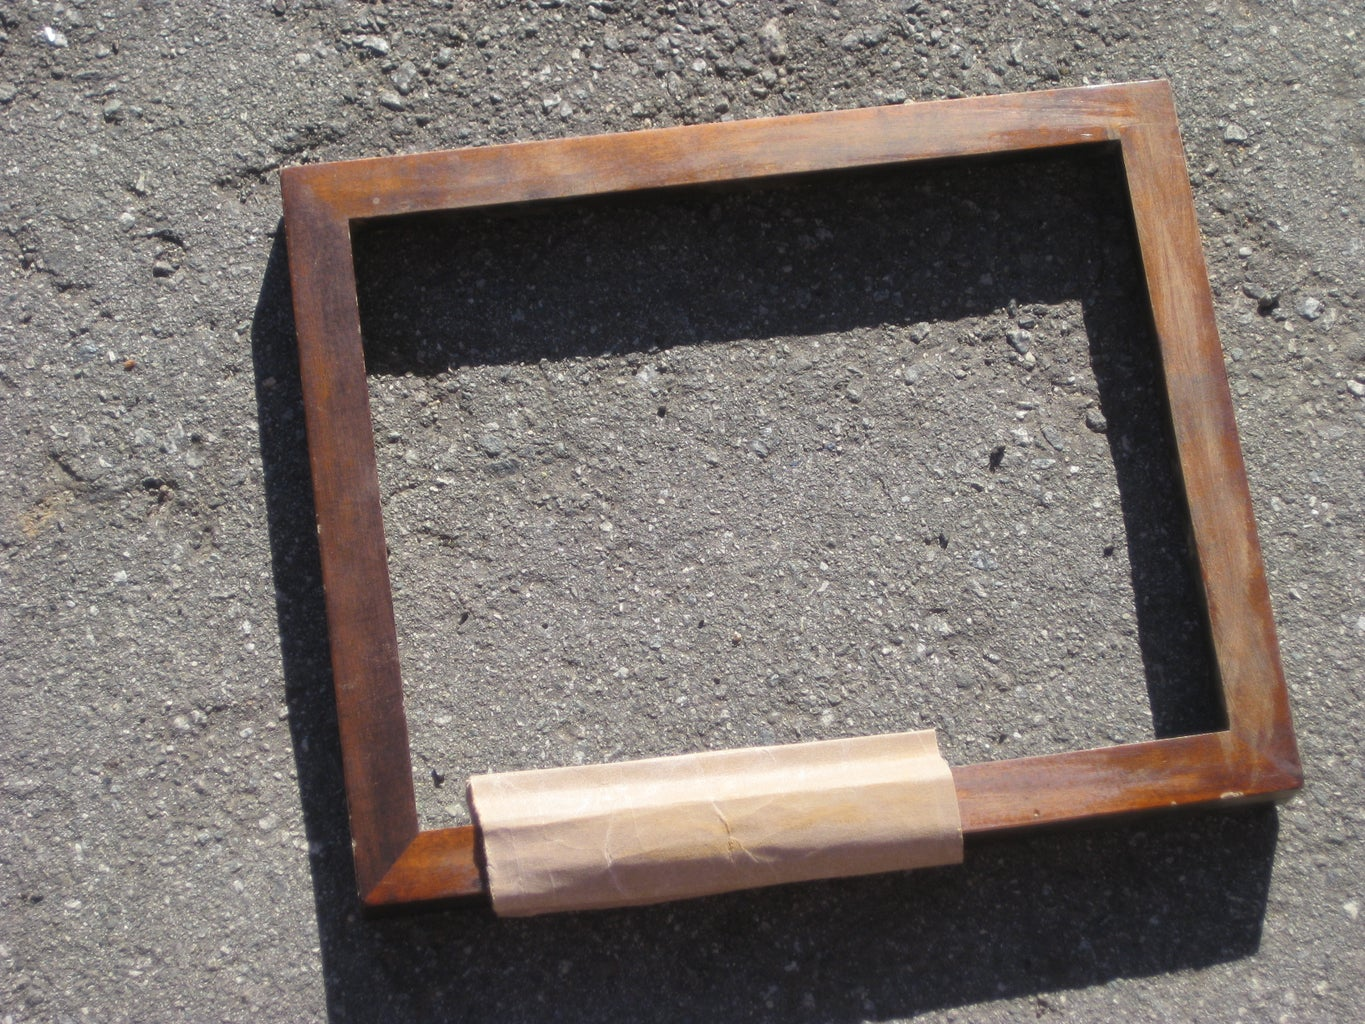 PAINTING THE PICTURE FRAME